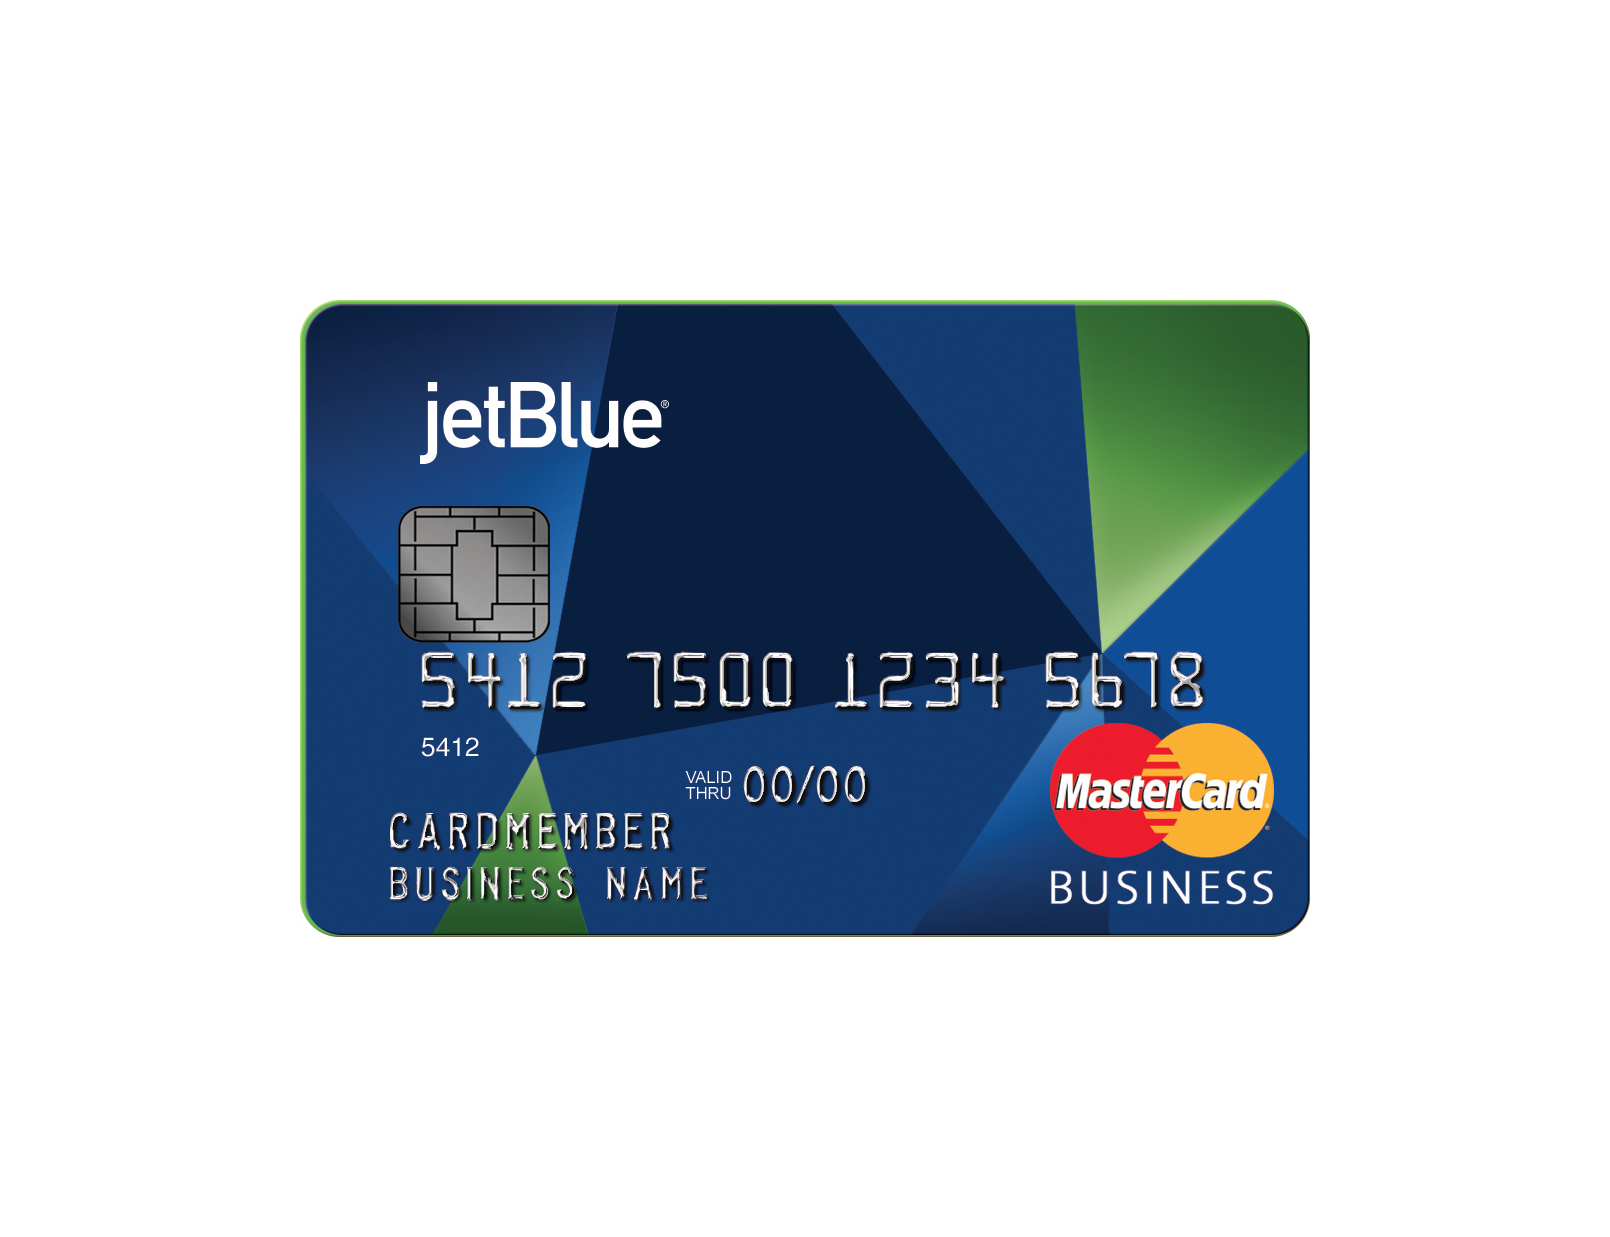 jetblue business card - Jetblue Business Card